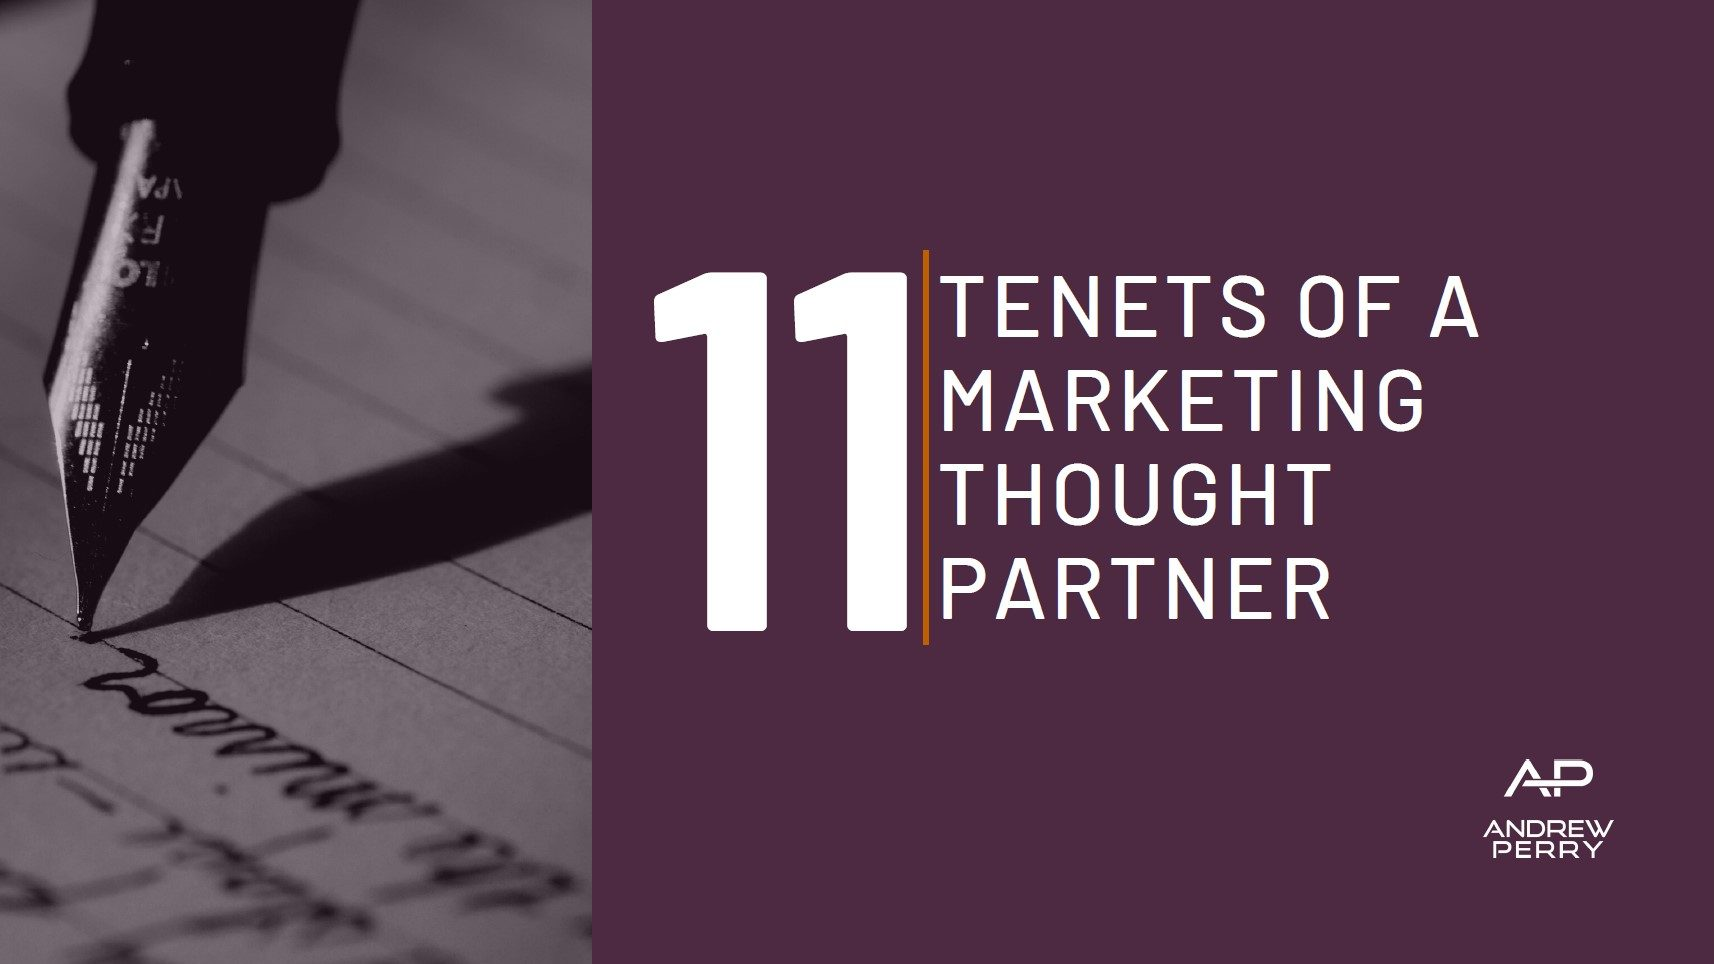 11 Tenets of a marketing thought partner